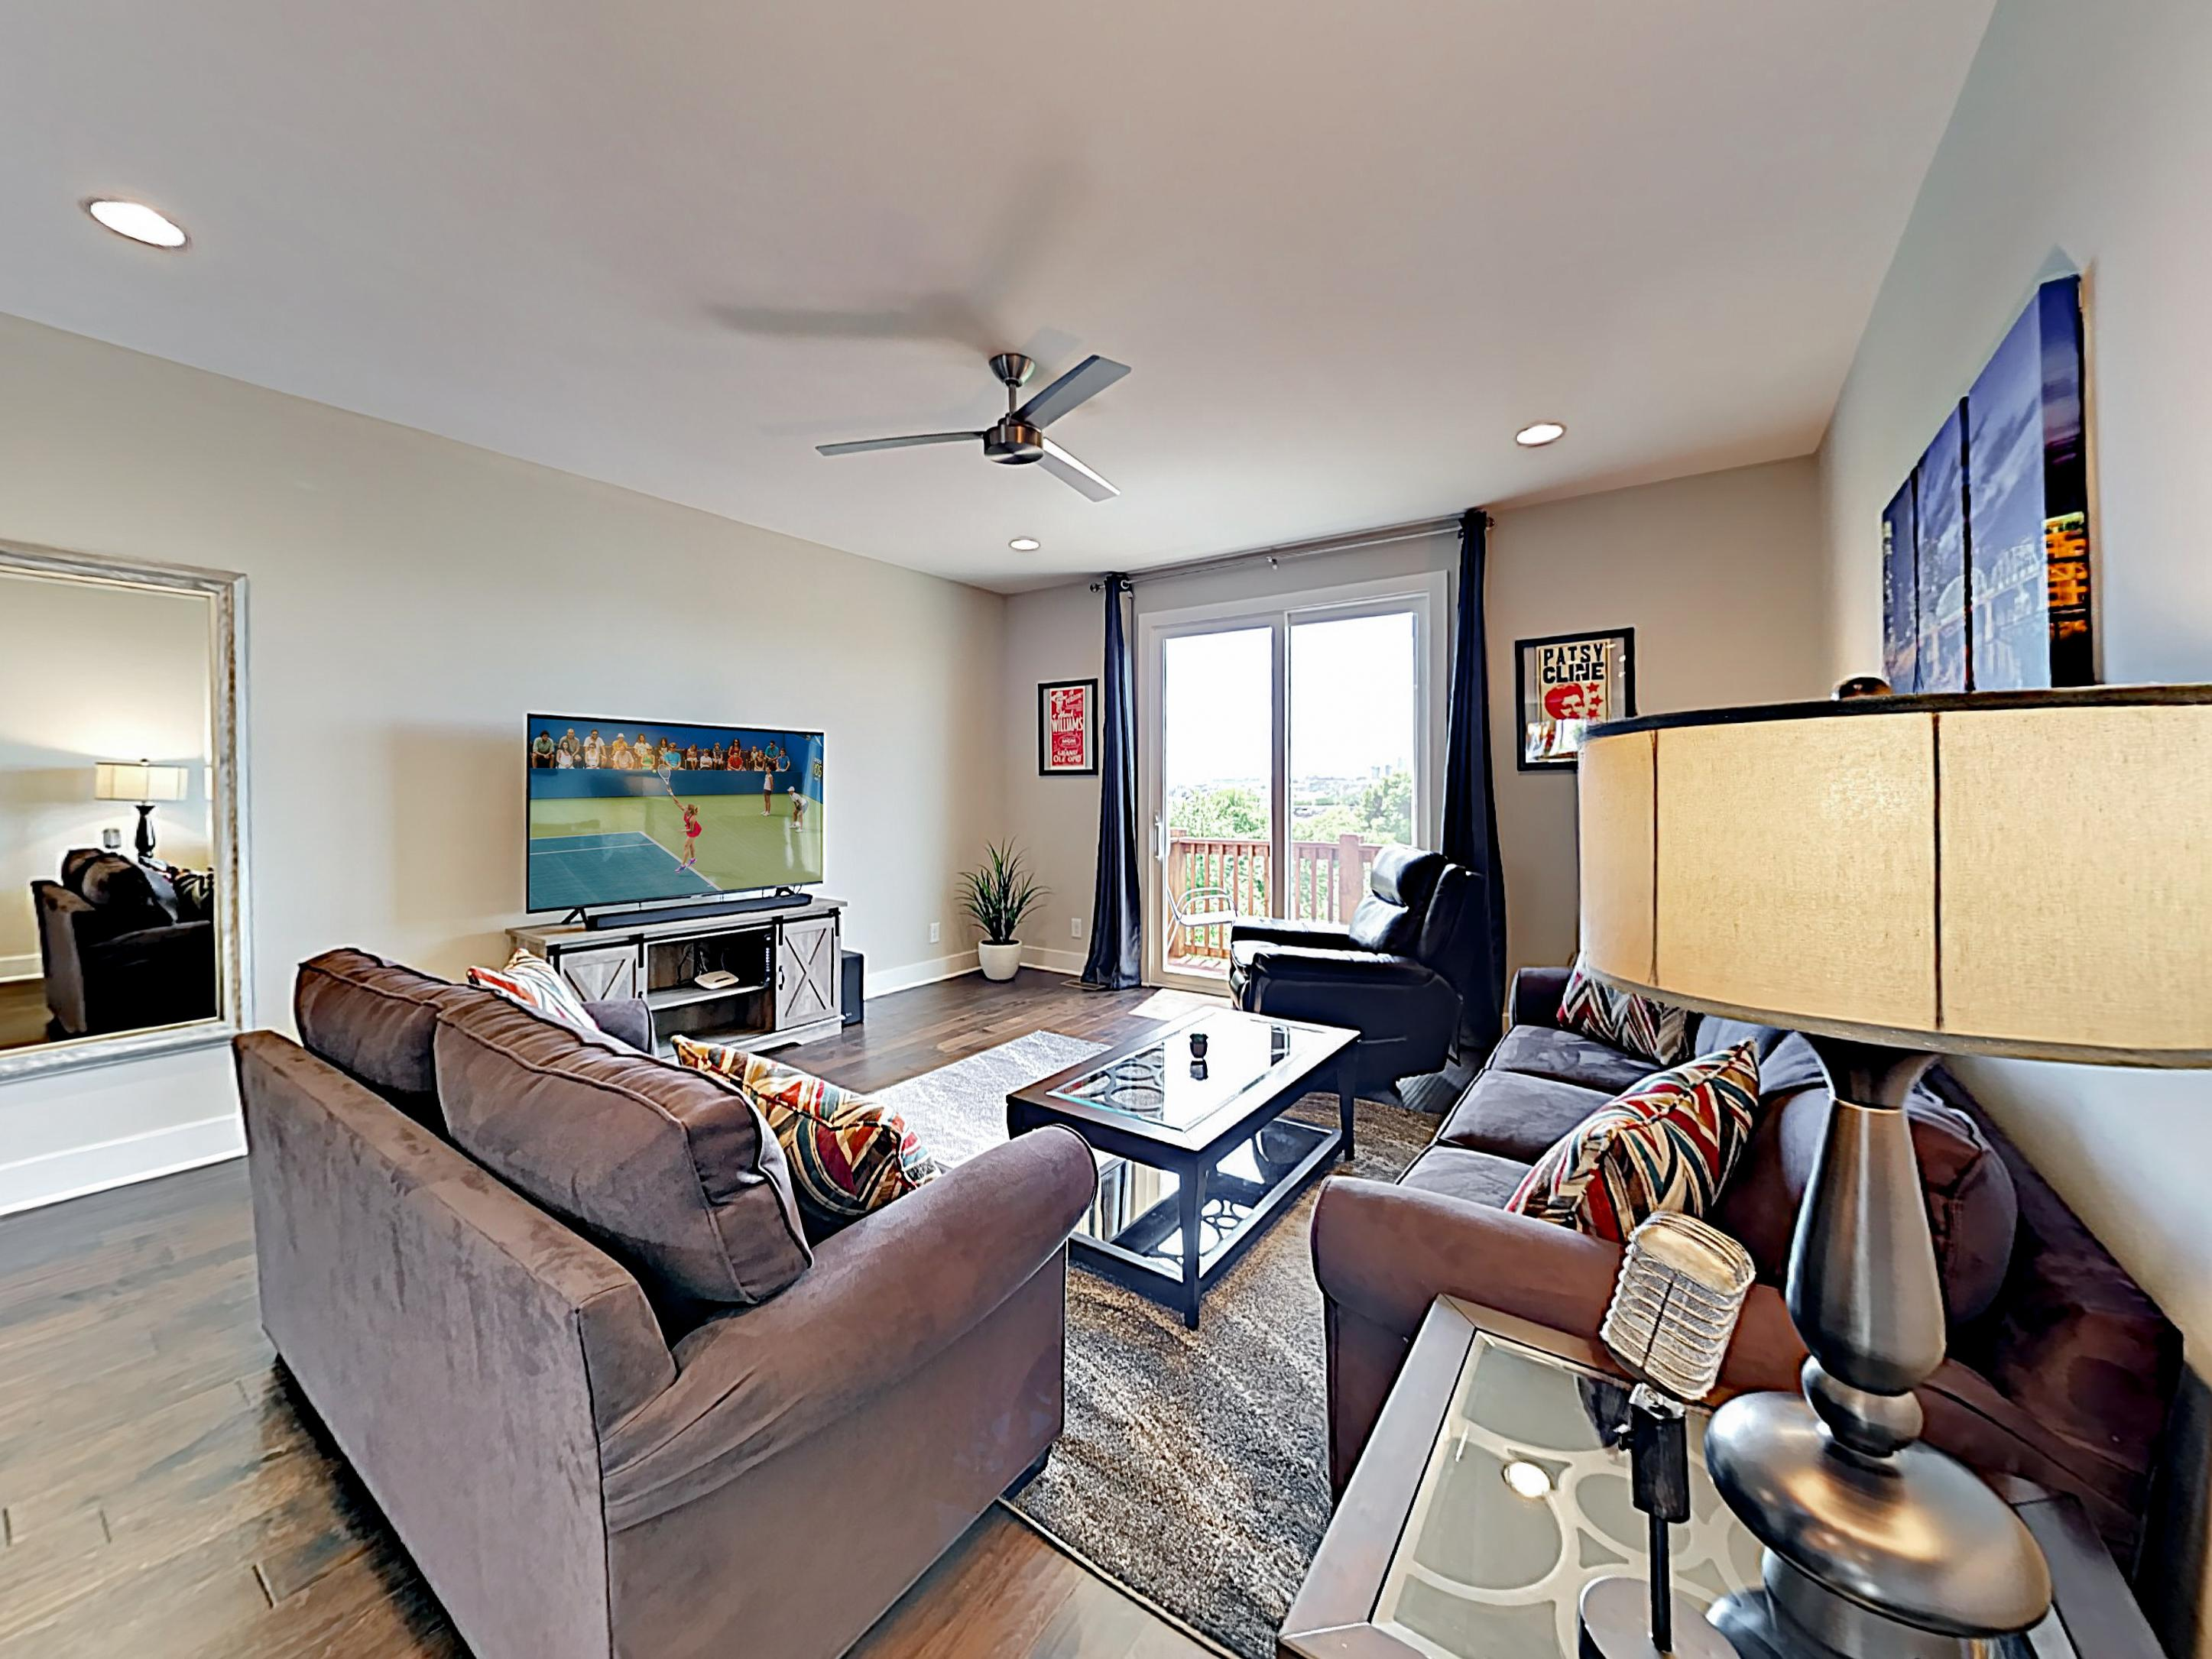 Welcome to Nashville! This townhome is professionally managed by TurnKey Vacation Rentals.